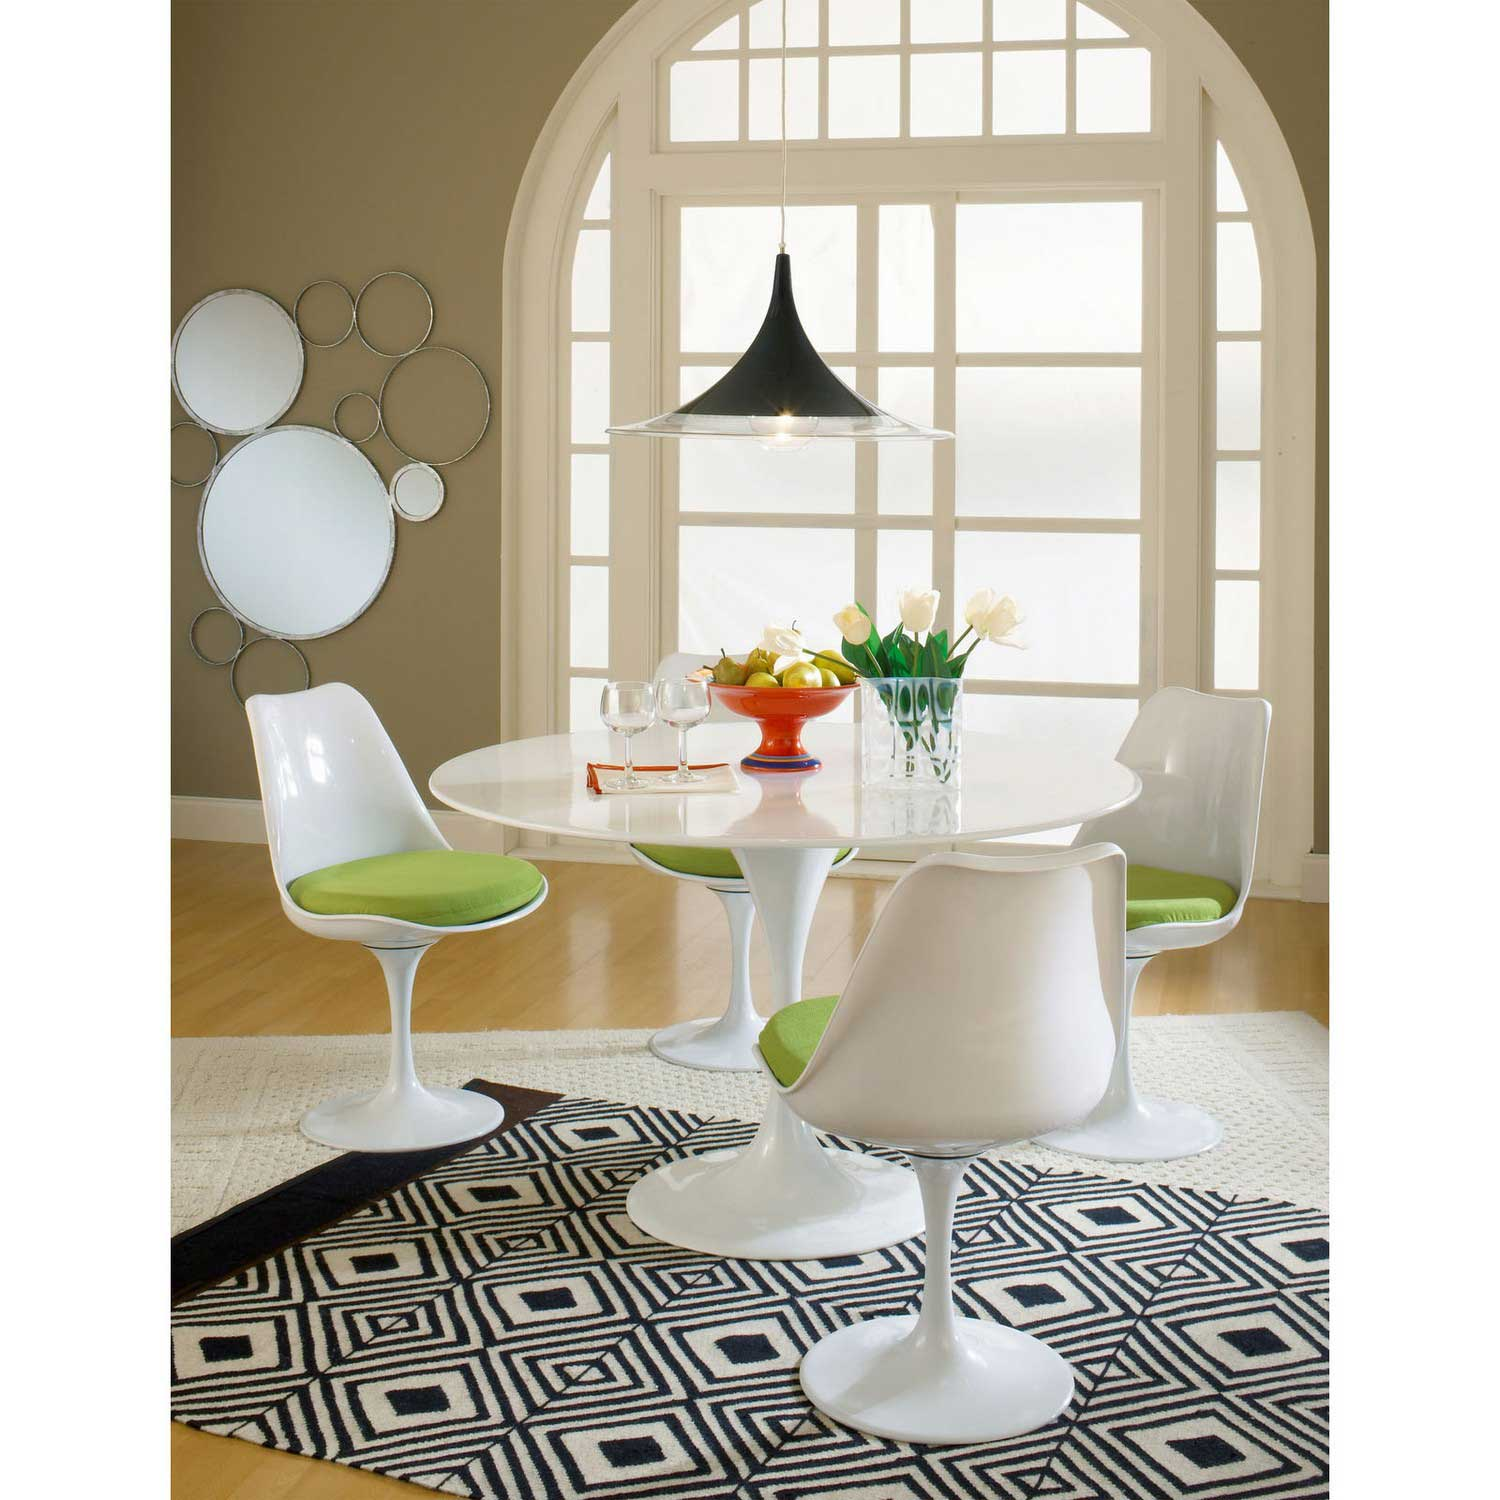 Modway Lippa 5 Piece Fiberglass Dining Set - Green